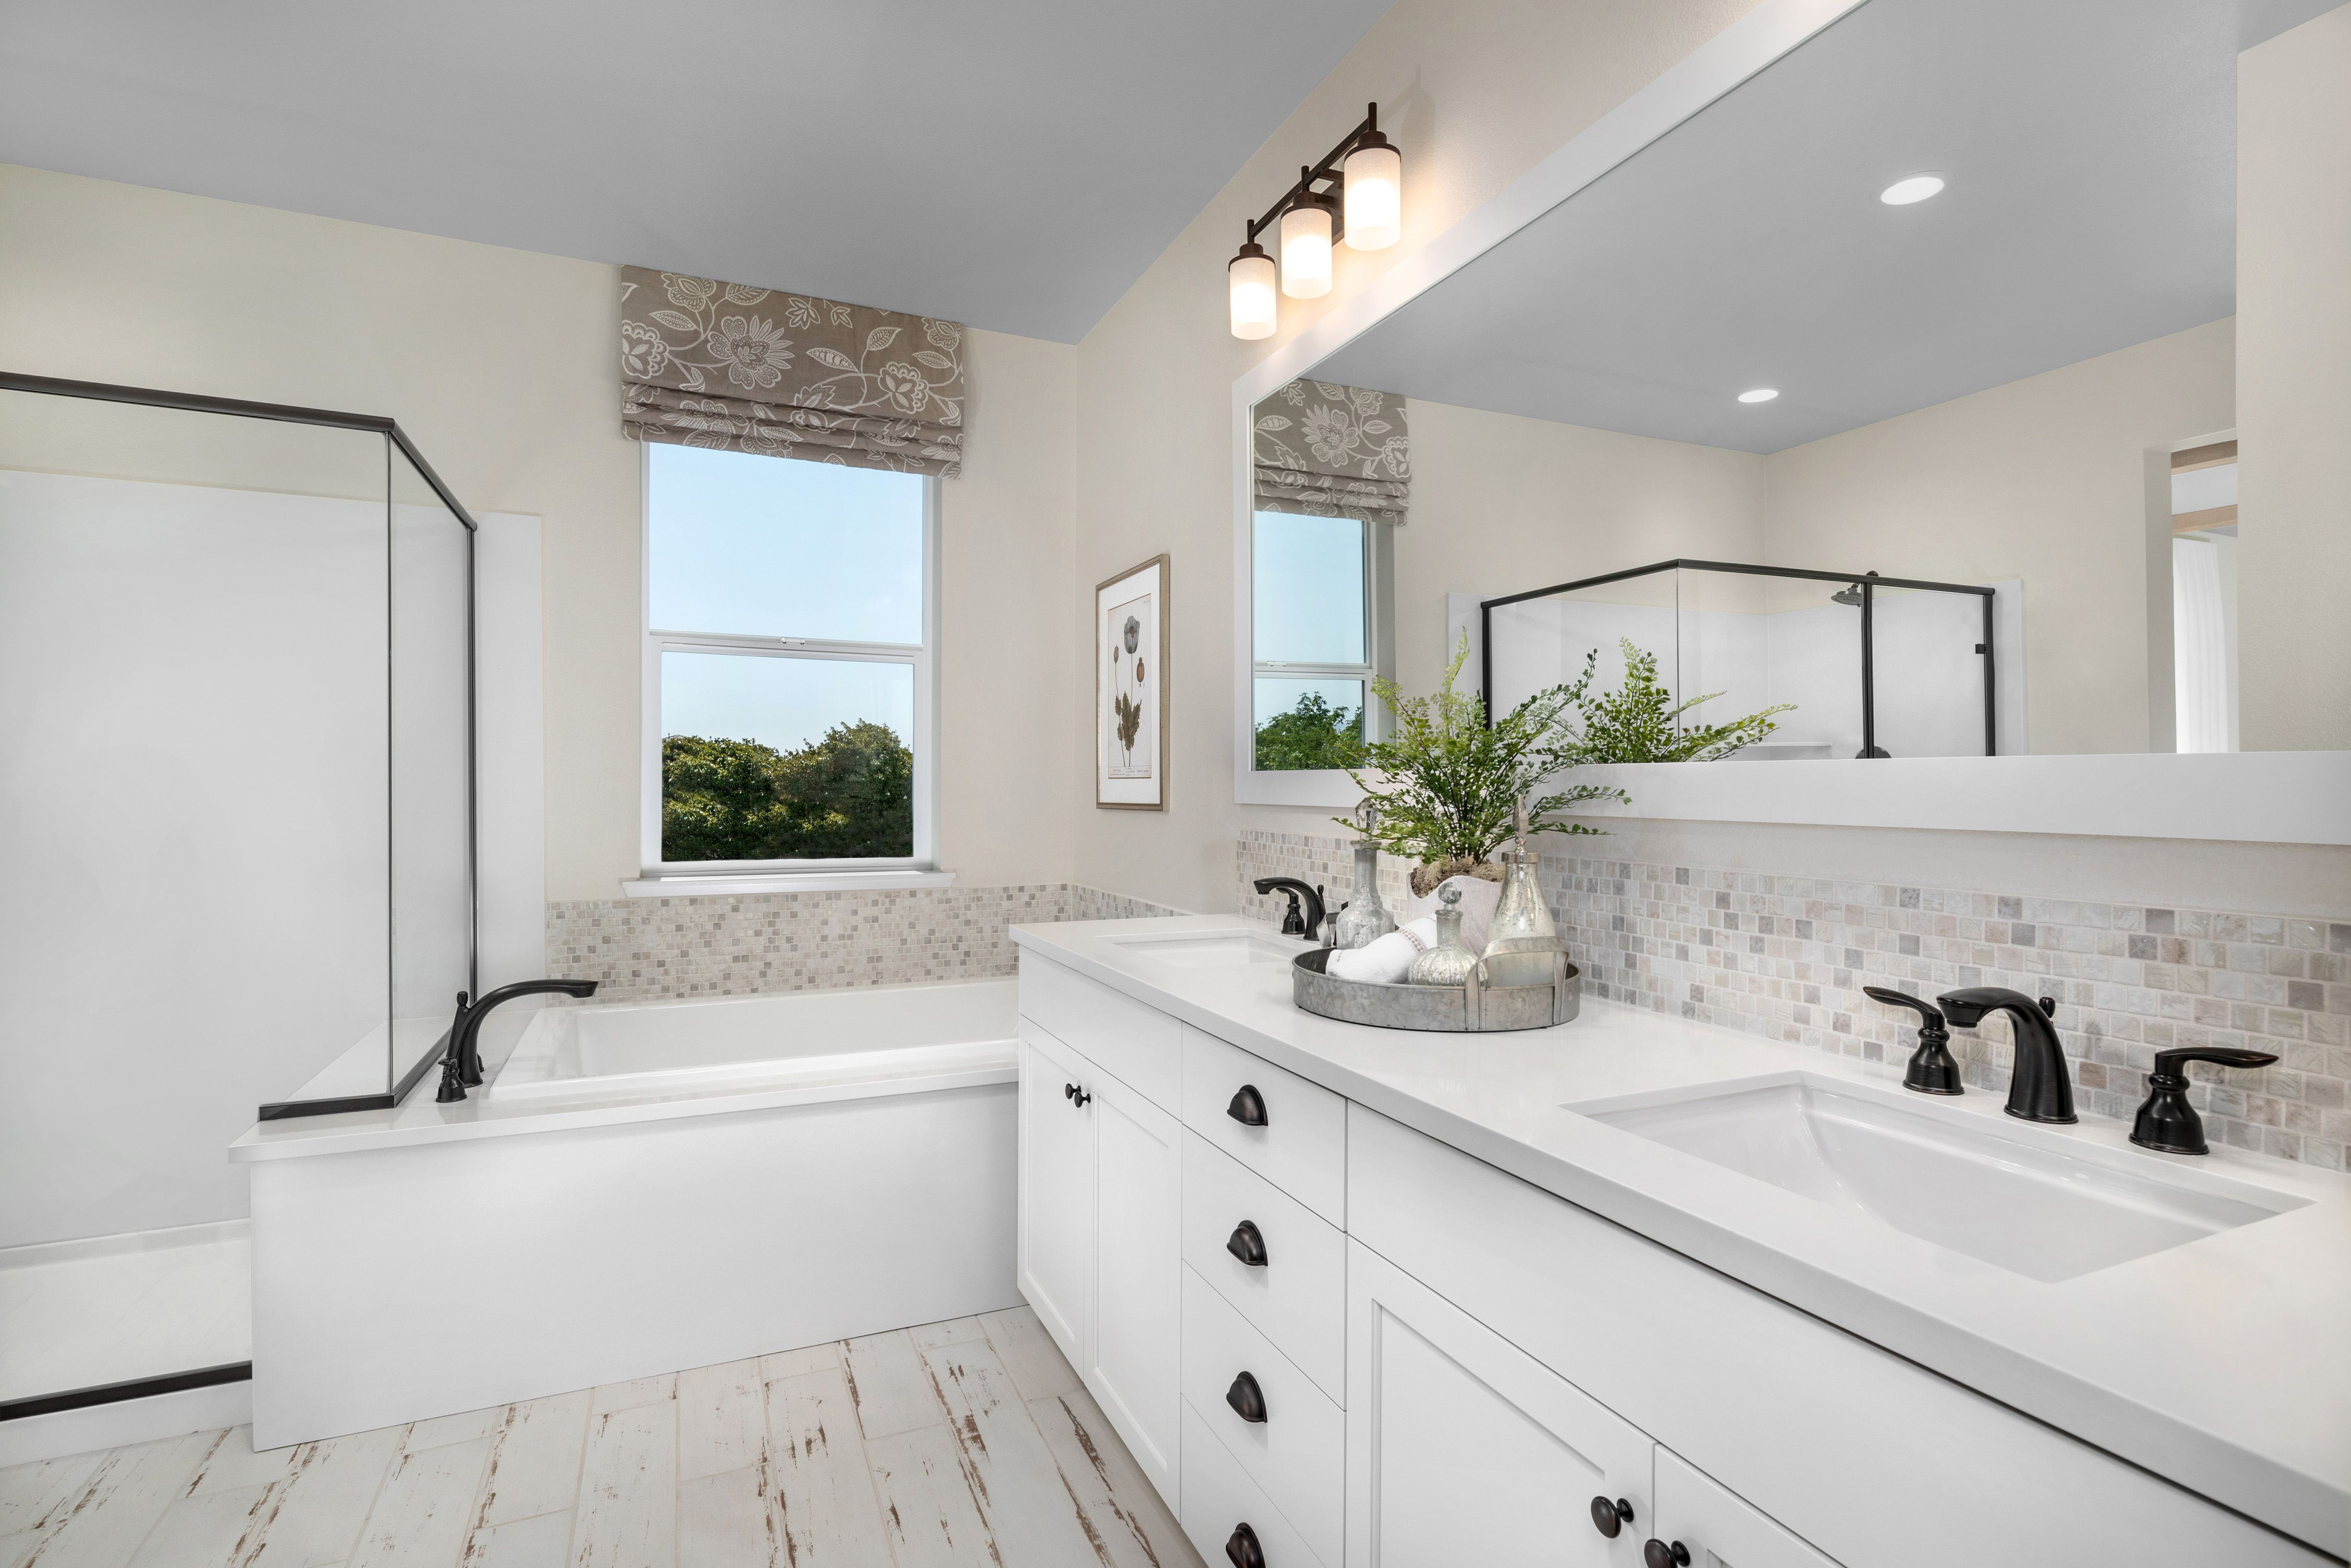 Bathroom featured in the Mayfair Residence 3 By Kiper Homes in Santa Cruz, CA